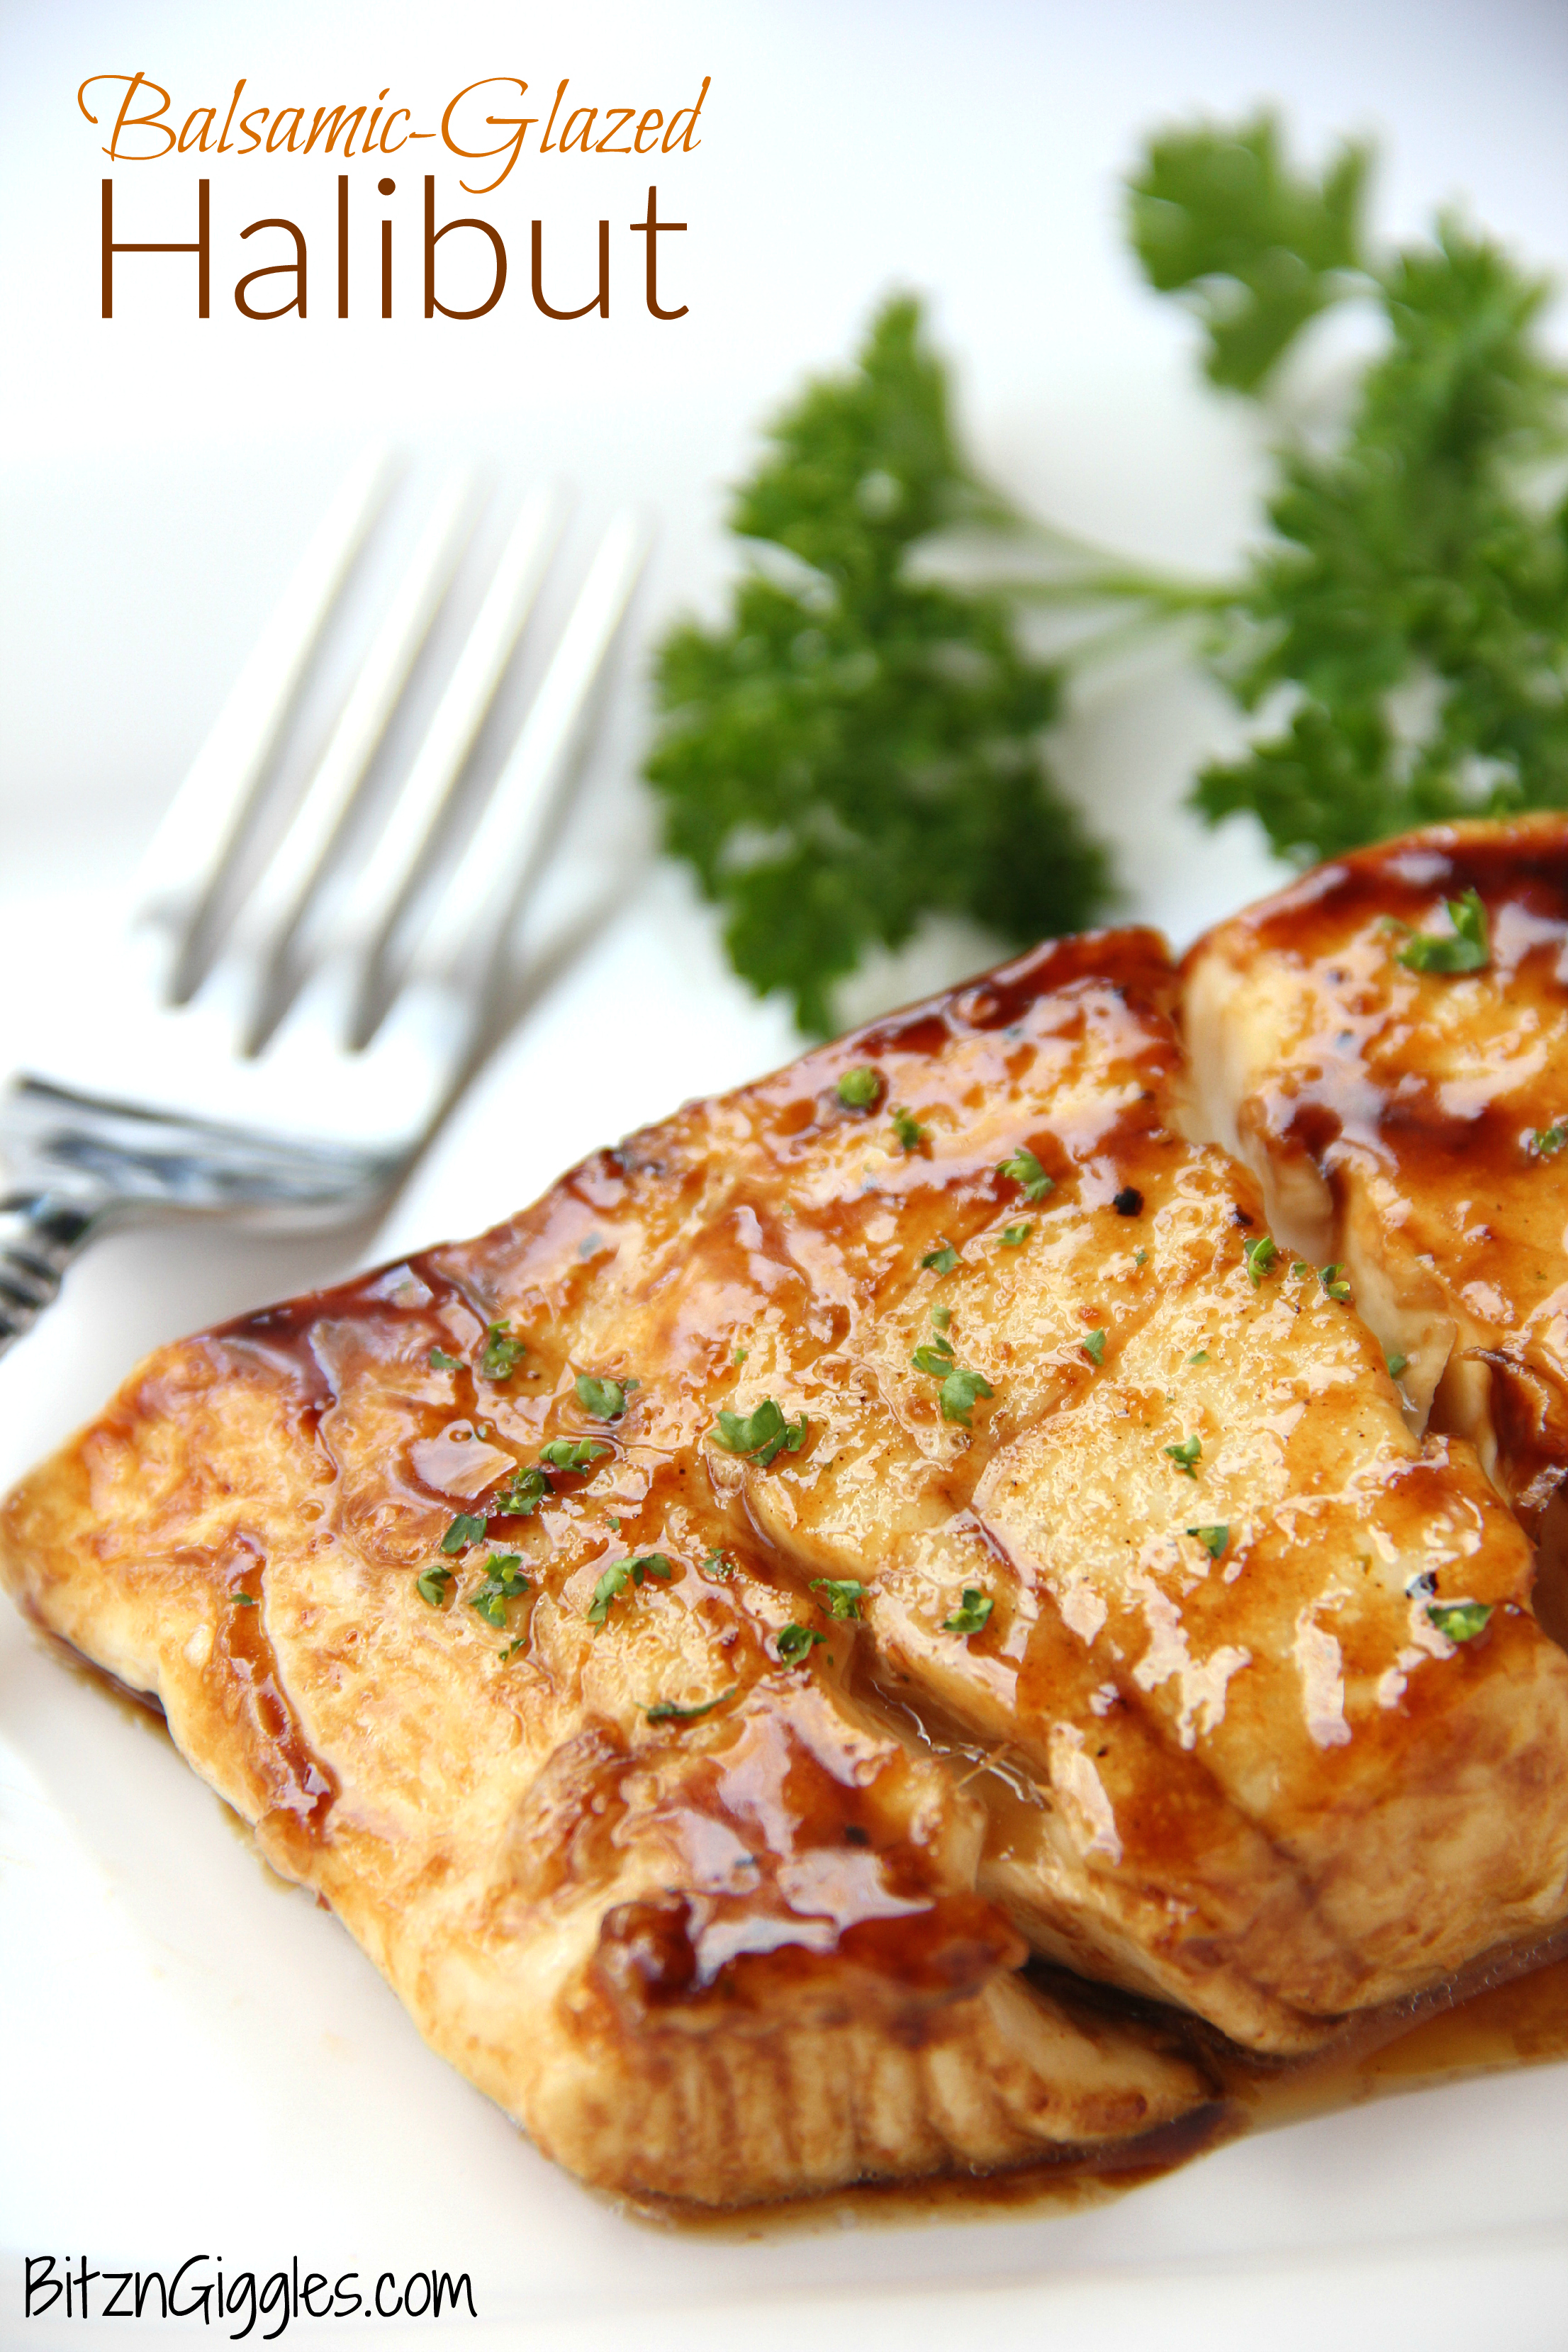 Balsamic Glazed Halibut - A flavorful brown sugar and balsamic glaze coats this light and flaky fish.